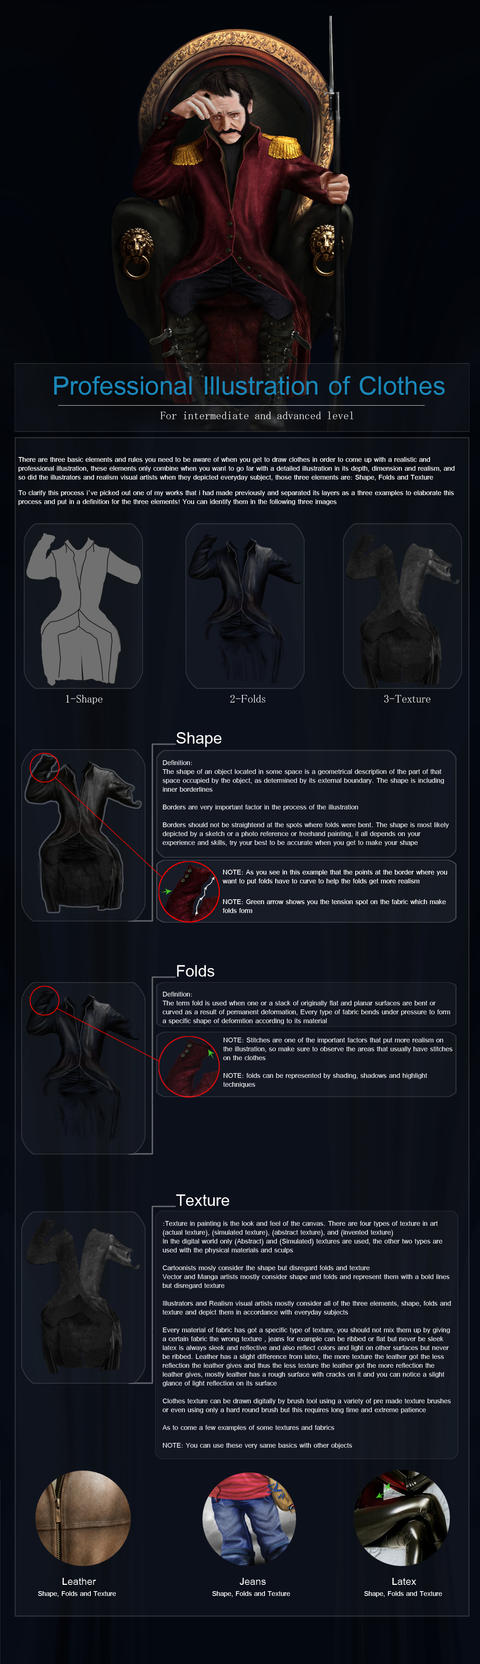 Professional Illustration of Clothes Tutorial by ArtSail